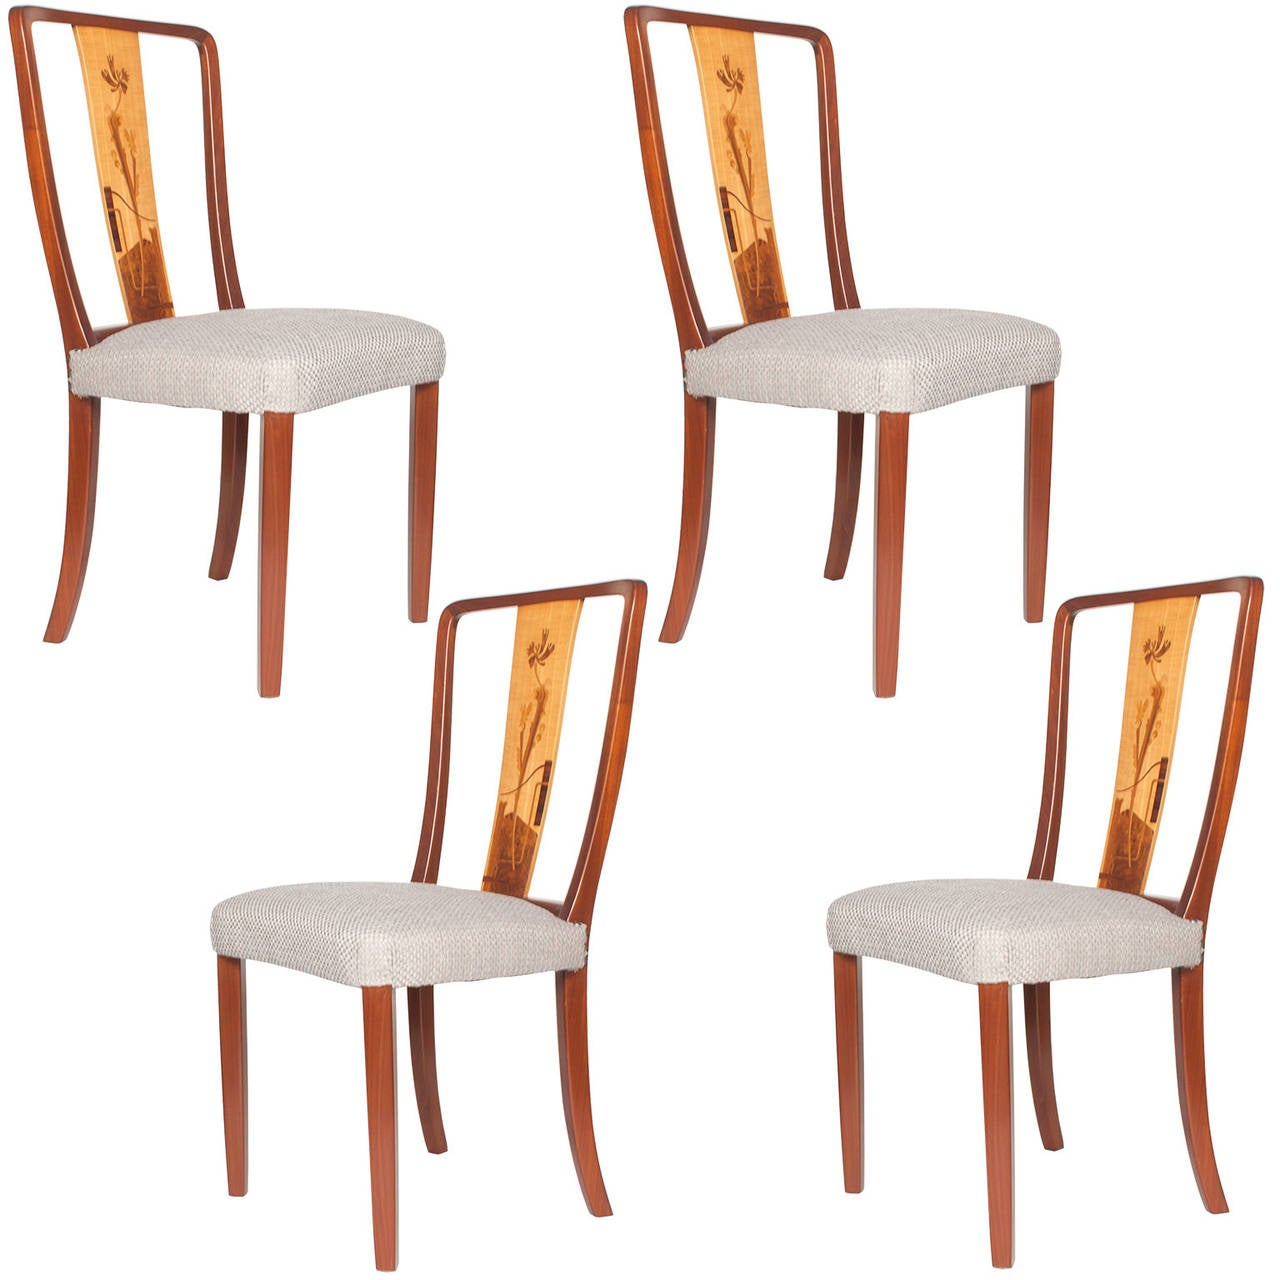 Scandinavian Modern Erik Chambert Set of Four Dining Chairs